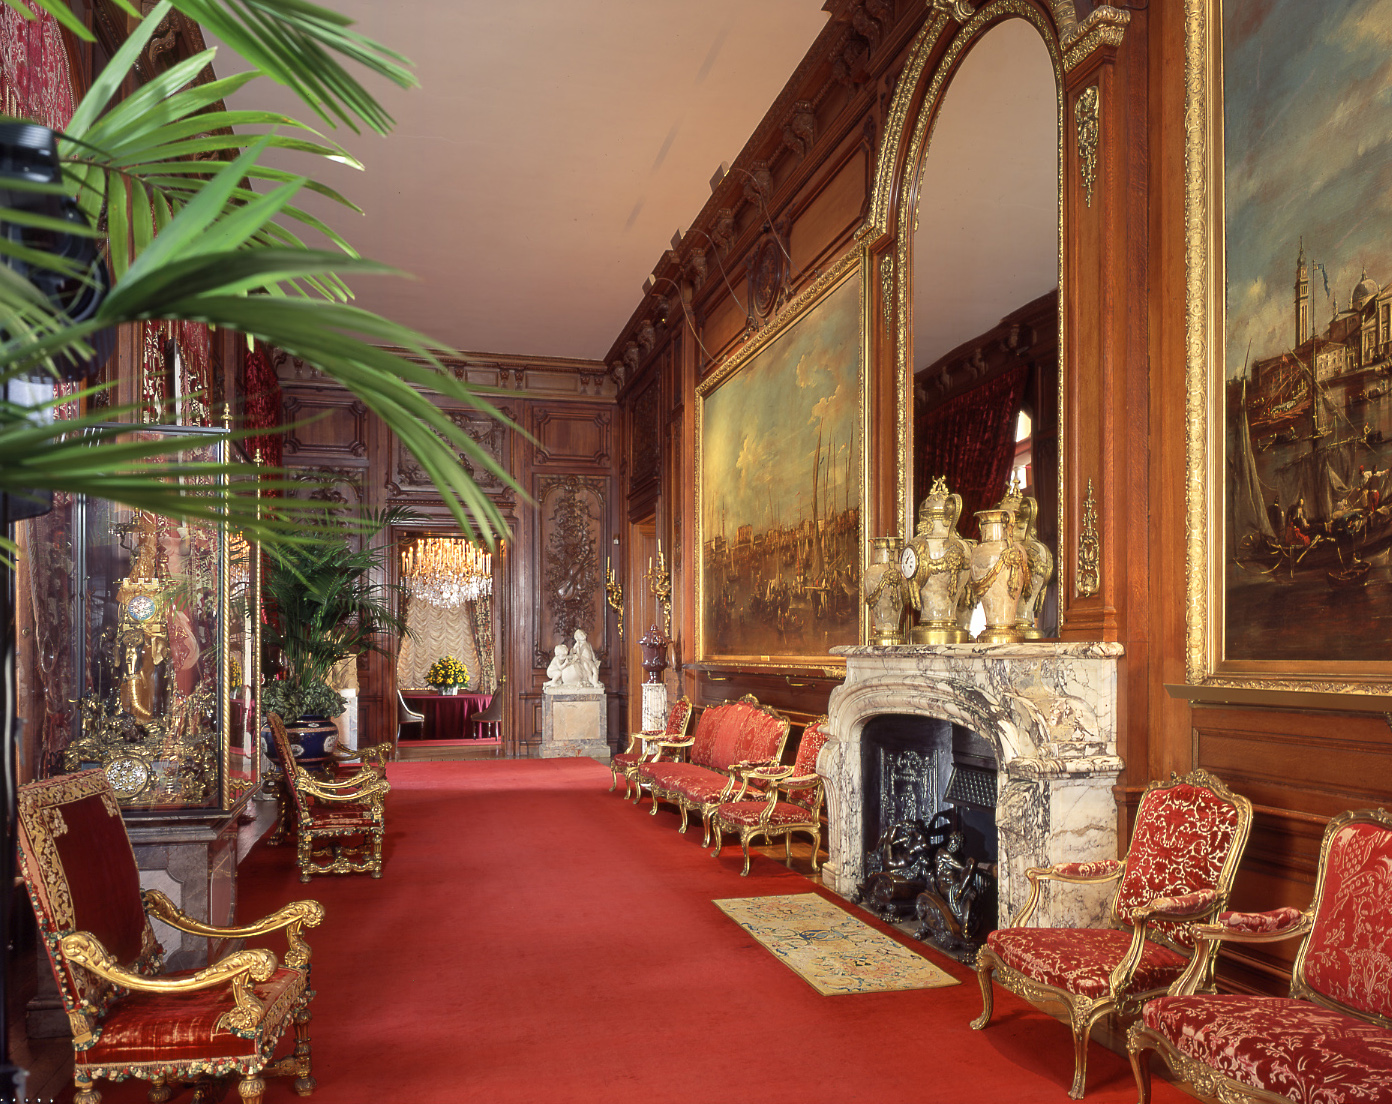 The East Gallery, Waddesdon Manor, The Rothschild Collection (The National Trust). Photo John Bigelow Taylor ©The National Trust, Waddesdon Manor